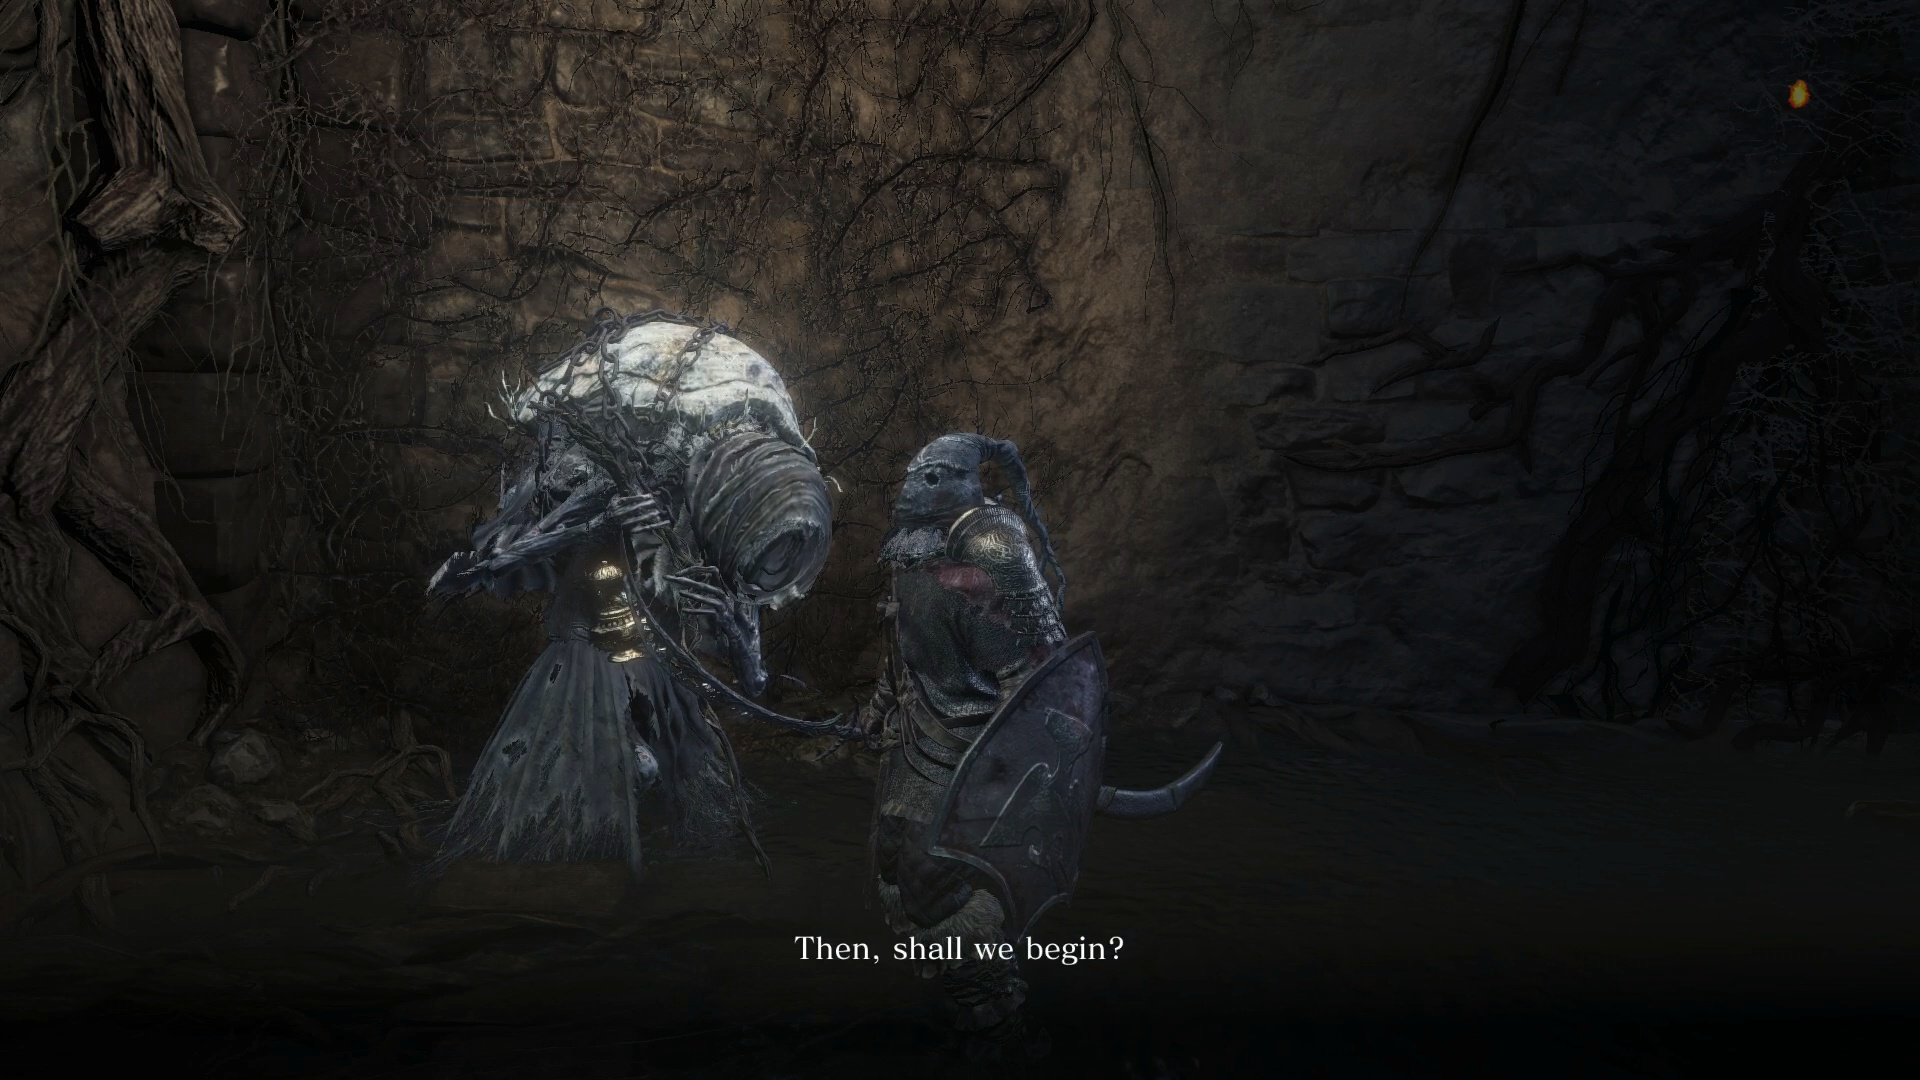 Dark Souls 3 How To Get The Best Ending Usgamer Only shows up if the ashen one accepts yoel of londor's offer of power. dark souls 3 how to get the best